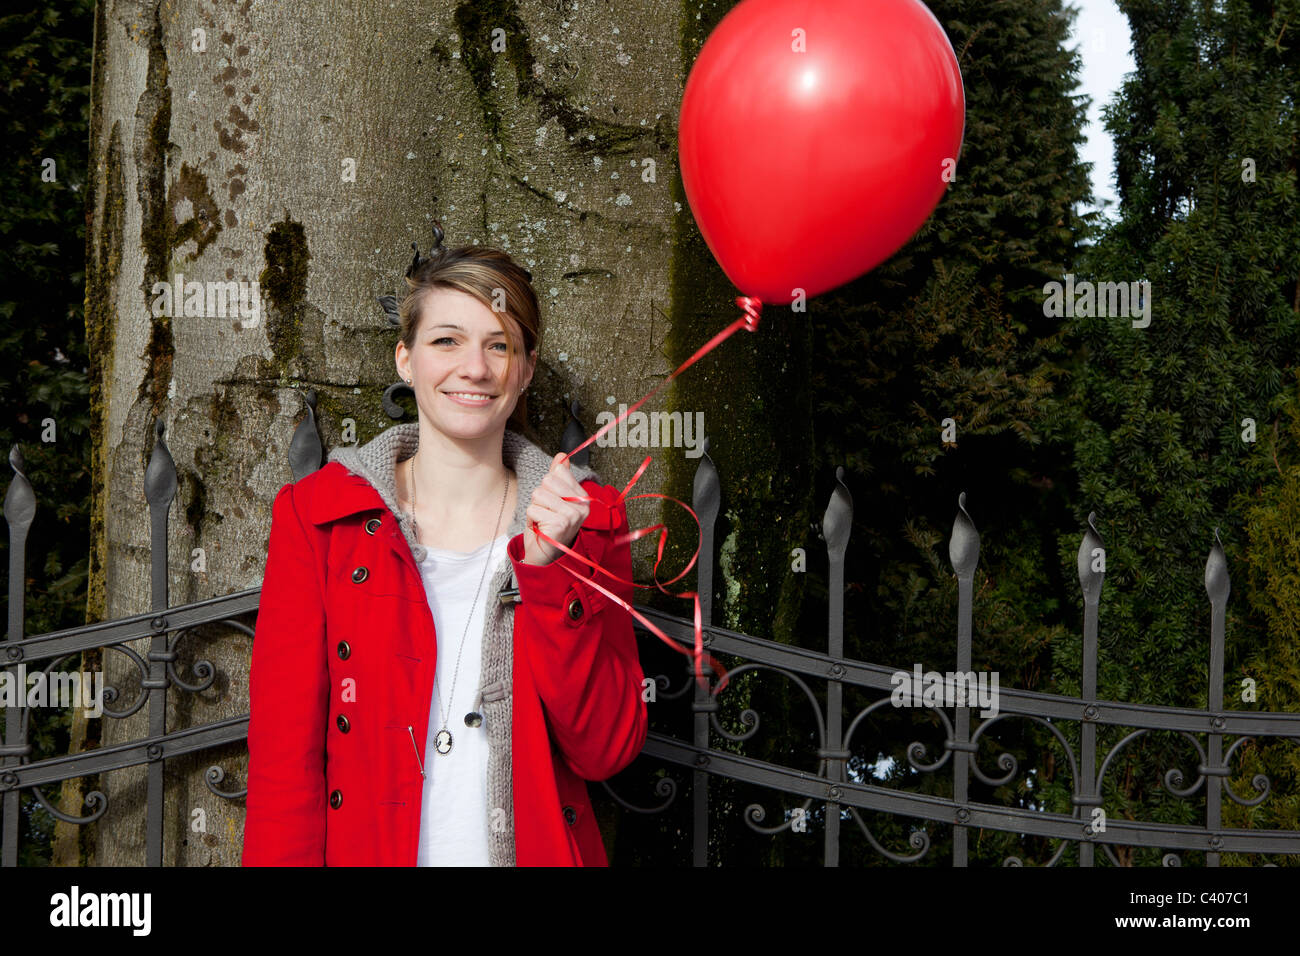 Young woman holding a red baloon - Stock Image